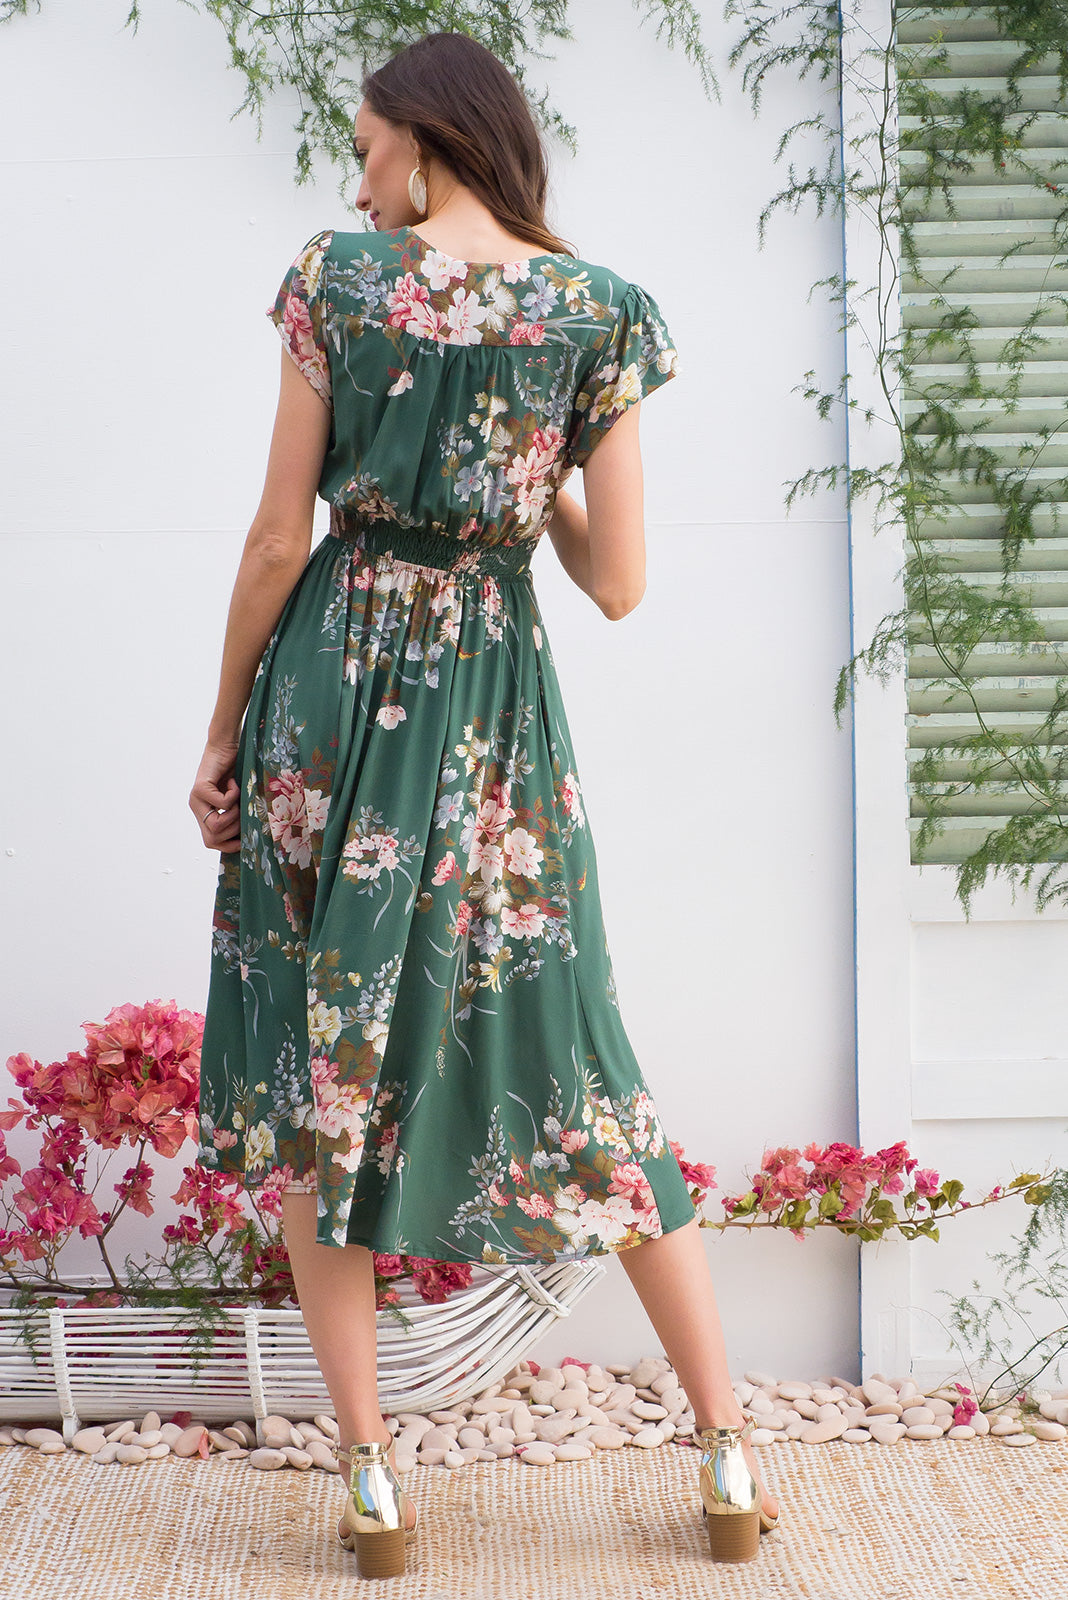 Lizzie Green Bouquet Midi dress features a vintage inspired fitted basque waist and elasticated waist with a cap sleeve and deep v neck the fabric is a soft woven rayon in a soft green bouquet floral print